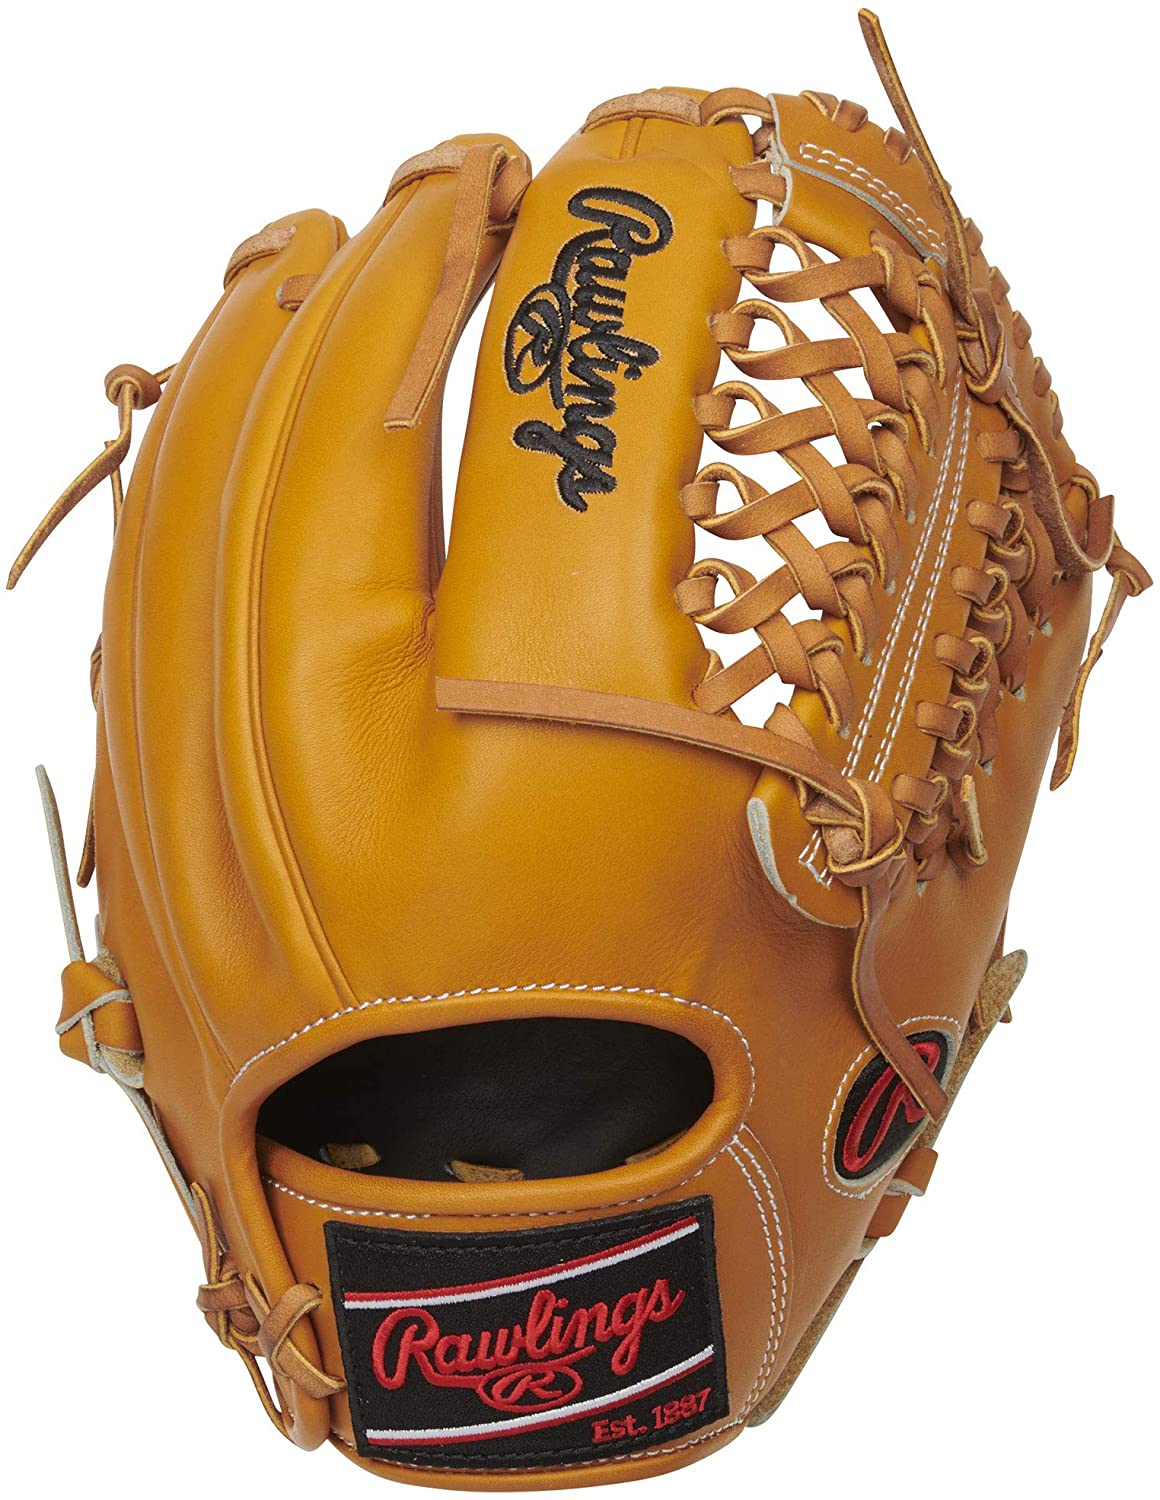 rawlings-heart-of-hide-11-75-r2g-baseball-glove-right-hand-throw PROR205-4T-RightHandThrow Rawlings 083321702457 <span>Rawlings all new Heart of the Hide R2G gloves feature little